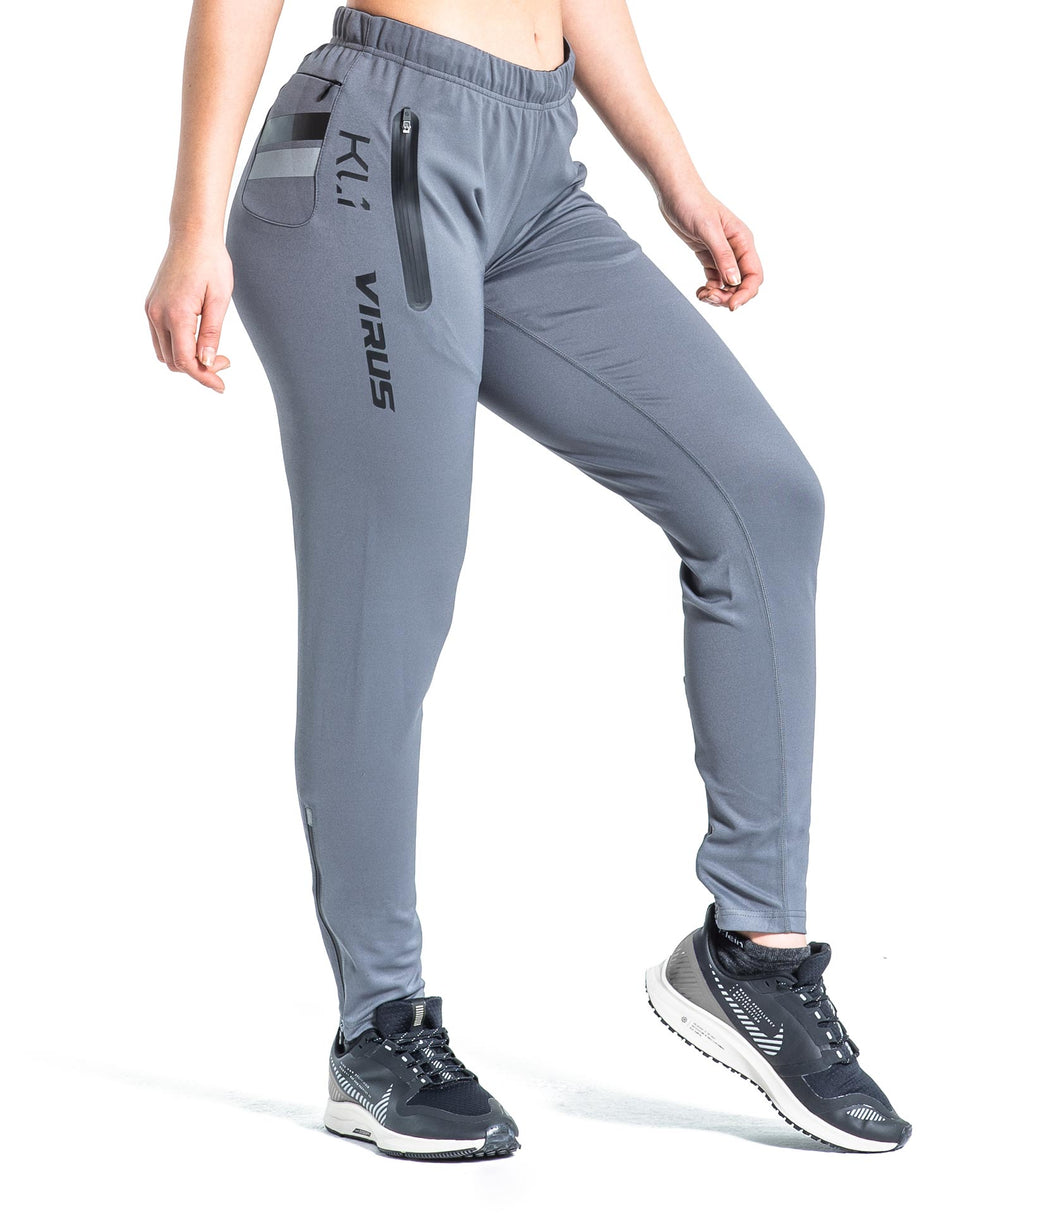 Au15 | BioCeramic™ KL1 Active Track Pants | Charcoal UNISEX